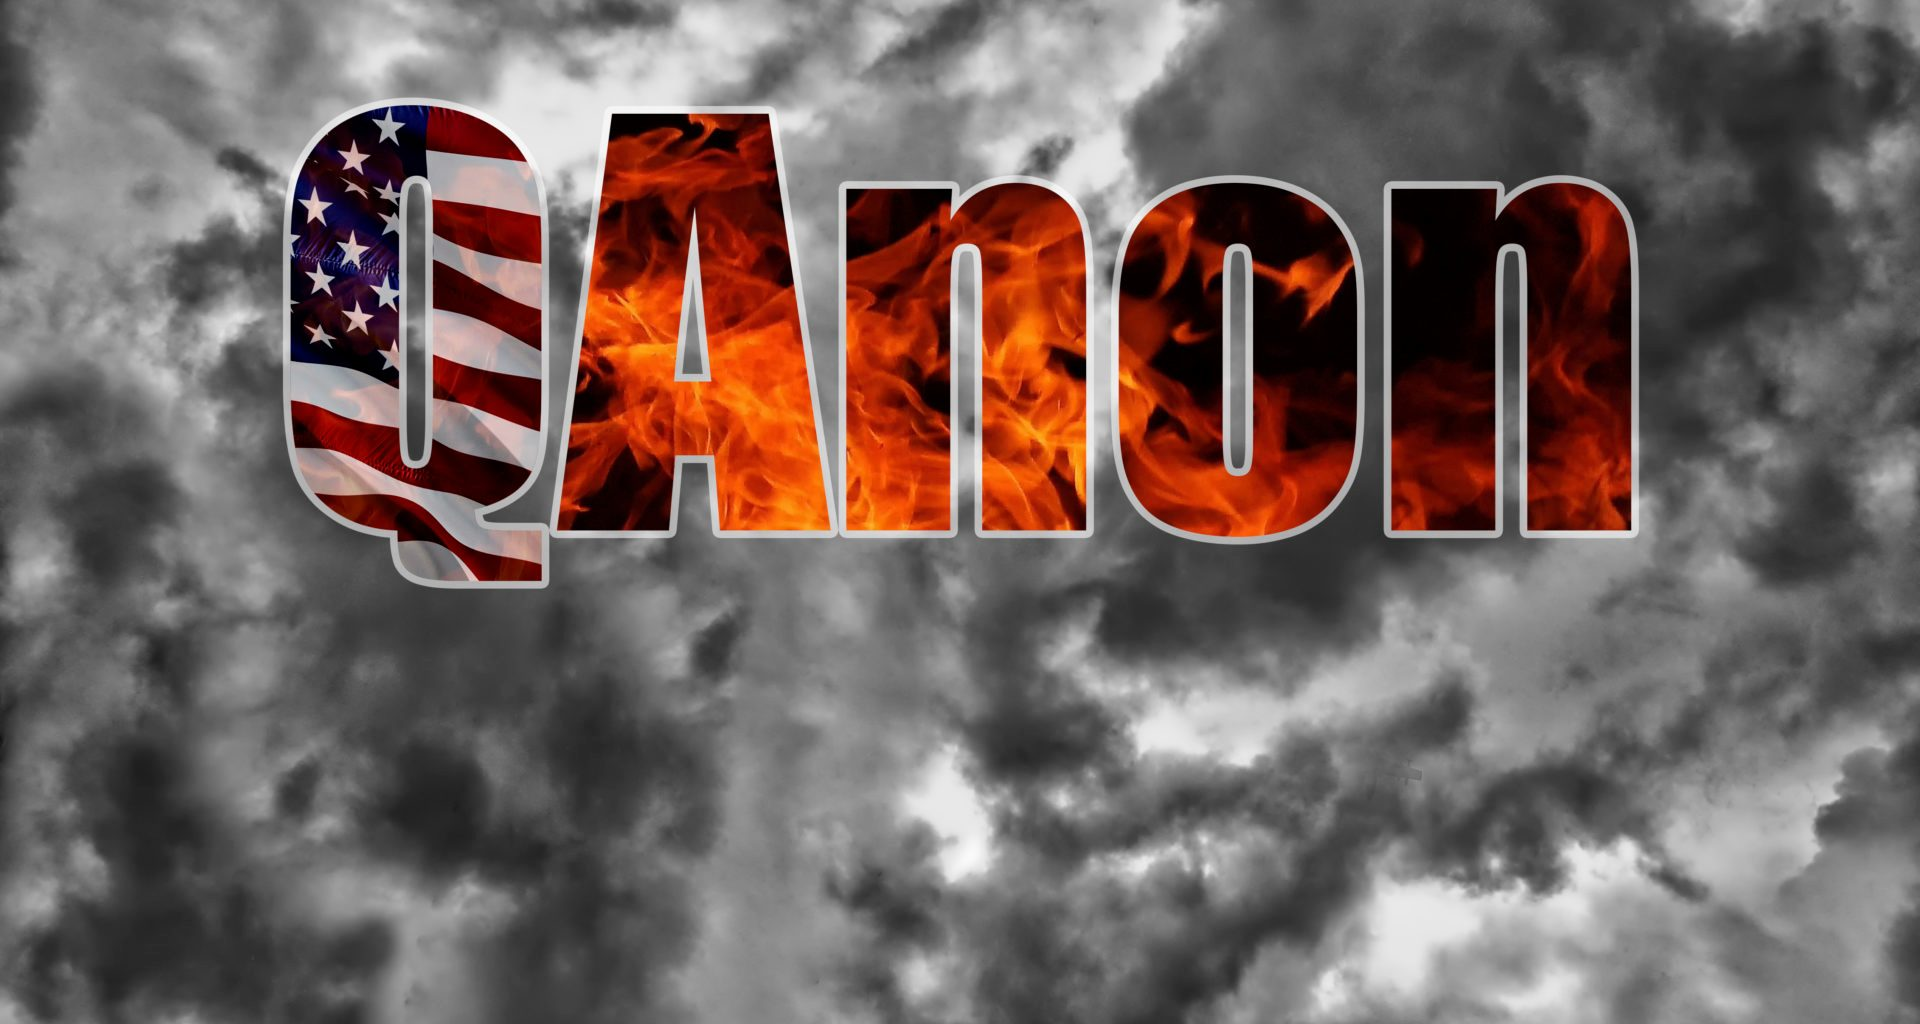 Facebook pages promoting banned QAnon cult still live 8